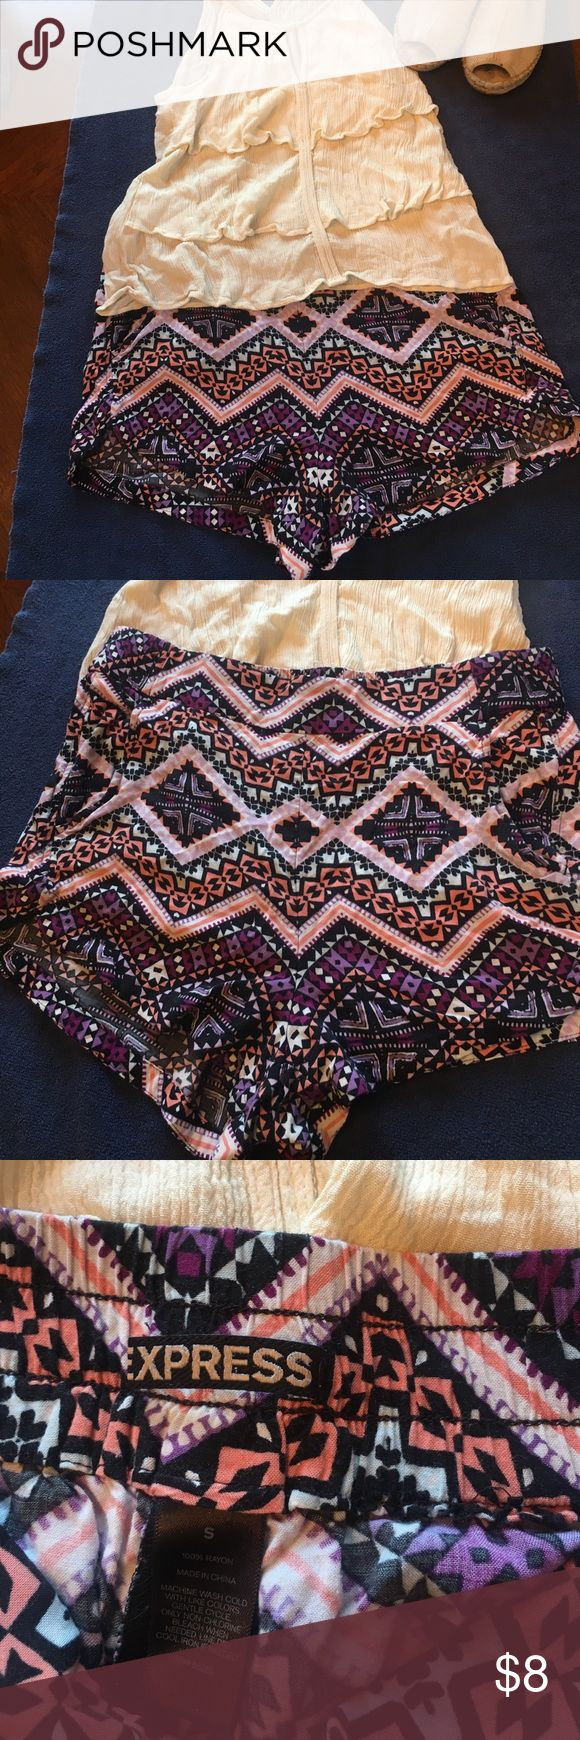 Express Aztec print Shorts Cute Express Aztec print Shorts  Size: Small Condition: Used No Holes No Tears Express Shorts